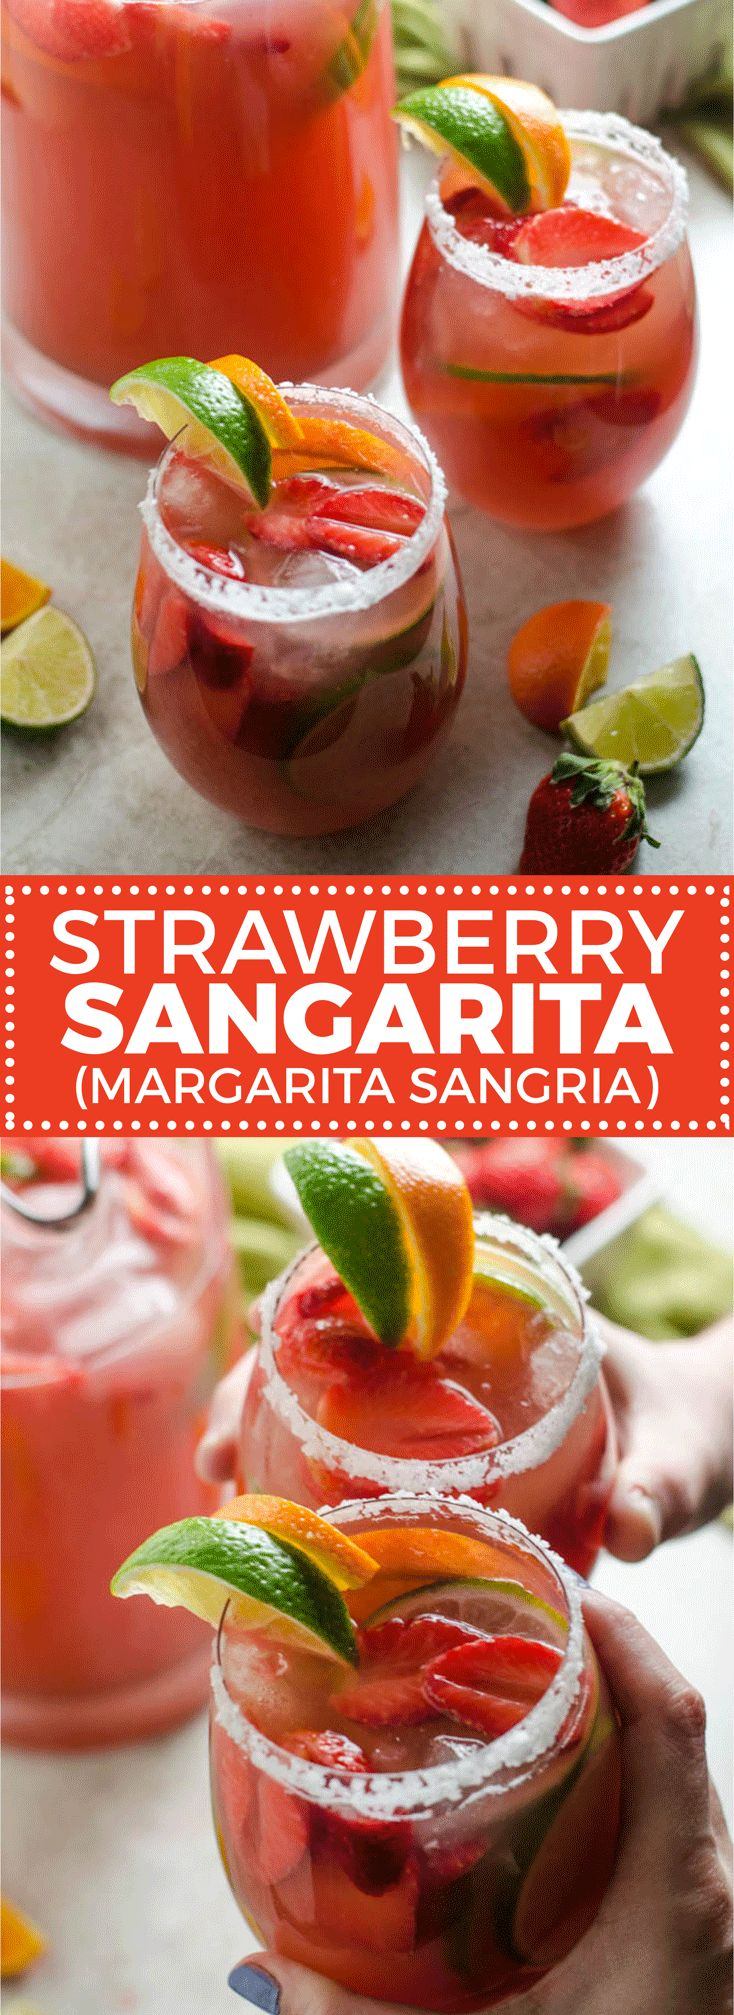 Spend this weekend sipping Strawberry Sangarita-- the love child of margaritas and sangria. This cocktail is over-the-top delicious and perfect for parties. | hostthetoast.com